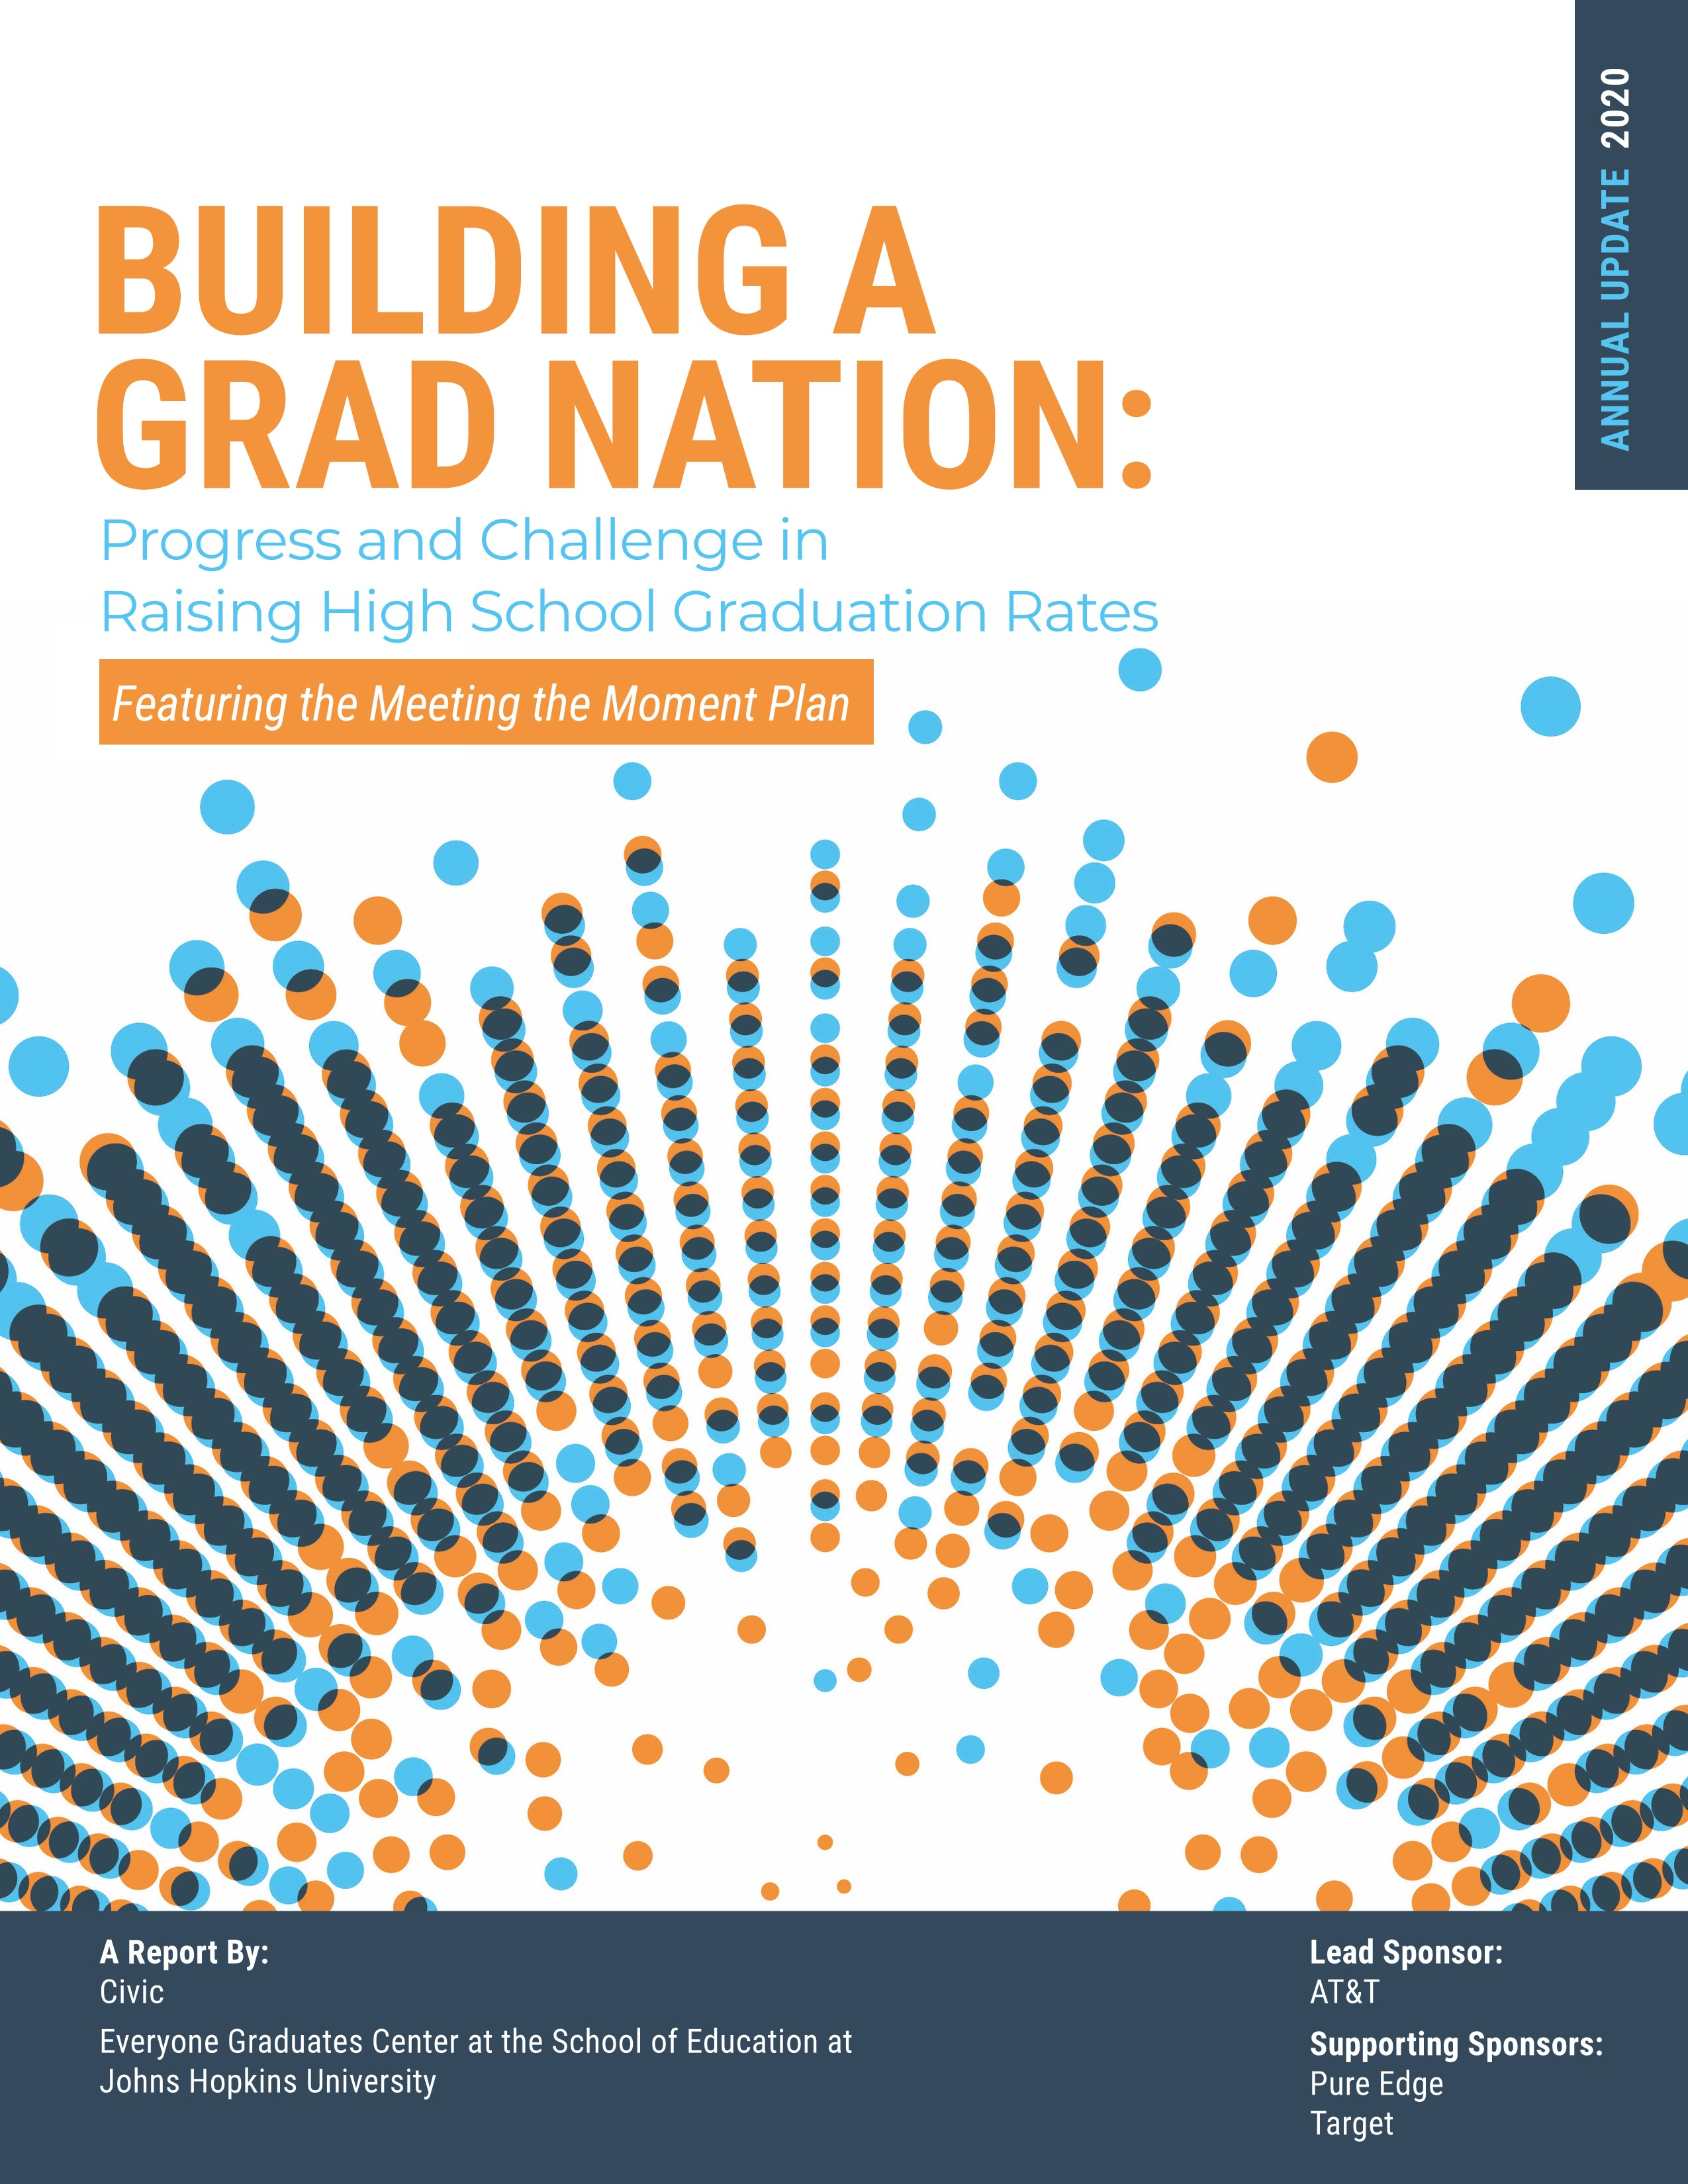 2020 Building a Grad Nation Report